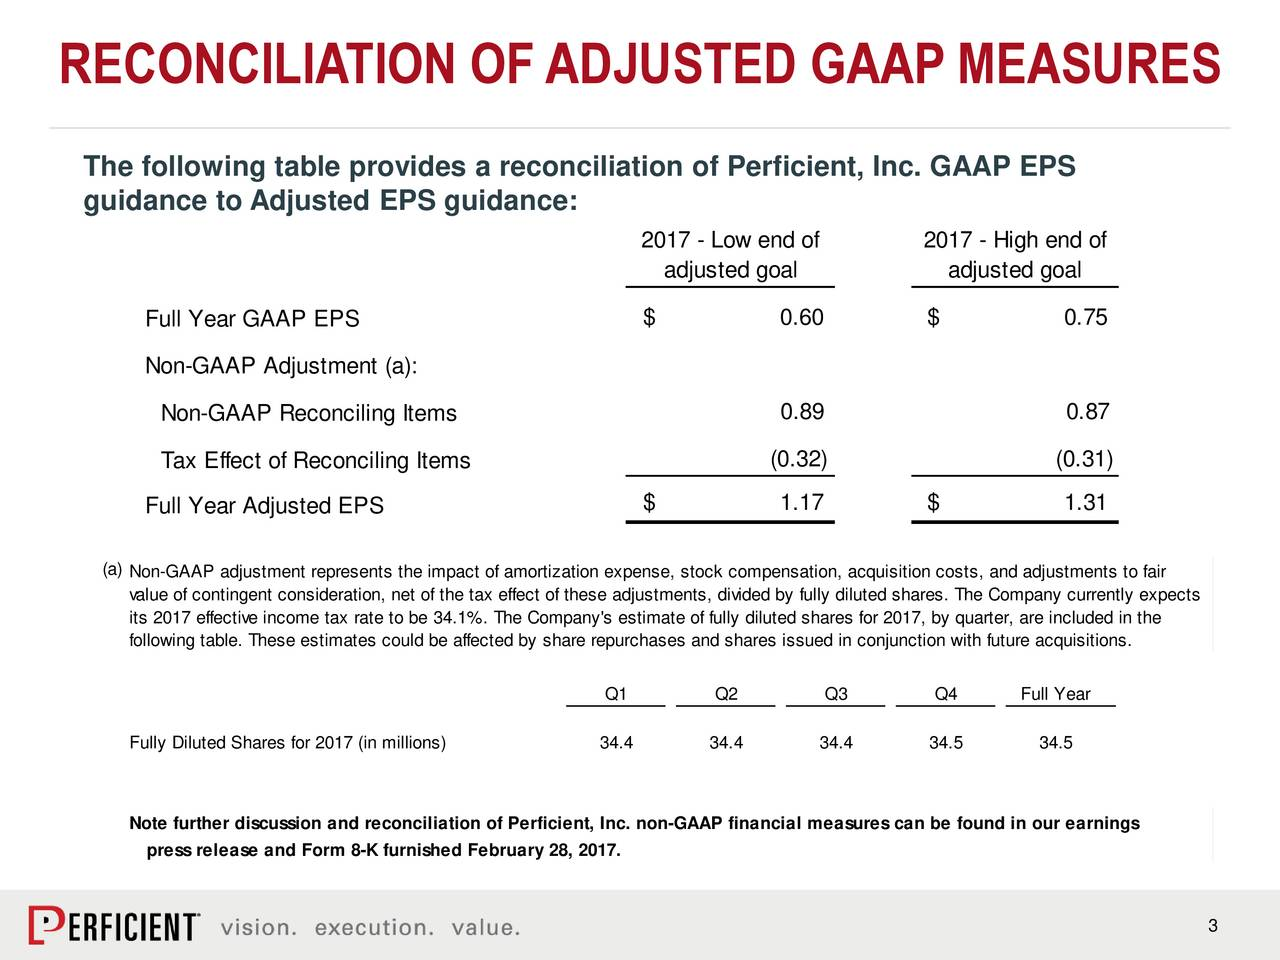 The following table provides a reconciliation of Perficient, Inc. GAAP EPS guidance to Adjusted EPS guidance: 2017 - Low end of 2017 - High end of adjusted goal adjusted goal Full Year GAAP EPS $ 0.60 $ 0.75 Non-GAAP Adjustment (a): Non-GAAP Reconciling Items 0.89 0.87 Tax Effect of Reconciling Items (0.32) (0.31) Full Year Adjusted EPS $ 1.17 $ 1.31 (a)Non-GAAP adjustment represents the impact of amortization expense, stock compensation, acquisition costs, and adjustments to fair value of contingent consideration, net of the tax effect of these adjustments, divided by fully diluted shares. The Company currently expects its 2017 effective income tax rate to be 34.1%. The Company's estimate of fully diluted shares for 2017, by quarter, are included in the following table. These estimates could be affected by share repurchases and shares issued in conjunction with future acquisitions. Q1 Q2 Q3 Q4 Full Year Fully Diluted Shares for 2017 (in millions) 34.4 34.4 34.4 34.5 34.5 Note further discussion and reconciliation of Perficient, Inc. non-GAAP financial measures can be found in our earnings press release and Form 8-K furnished February 28, 2017. 3